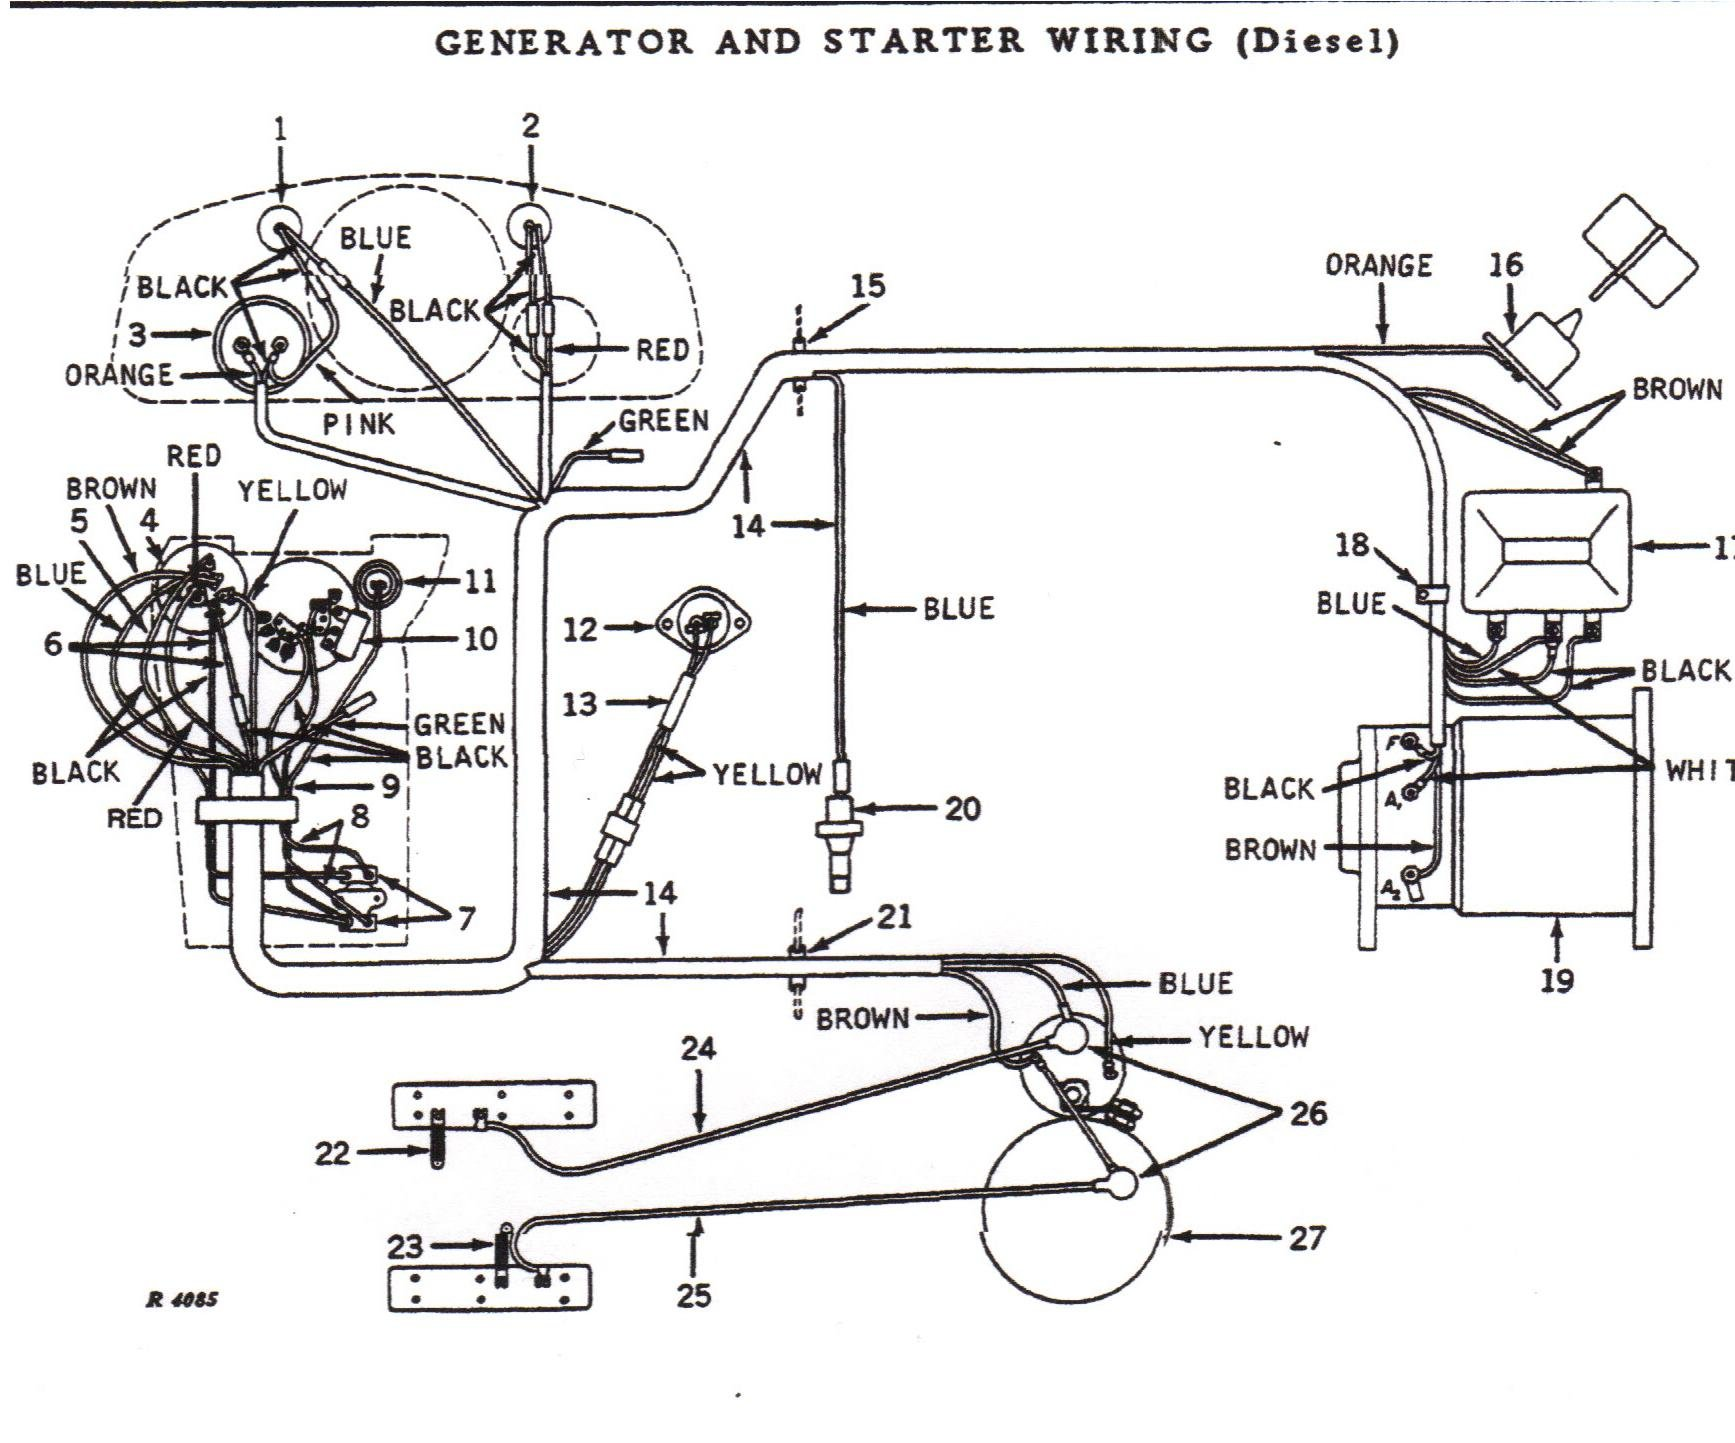 Malibu Bcm besides X together with Starter Wires in addition S L further Ct Wiring Diagram Doc X. on 12 volt starter wiring diagram